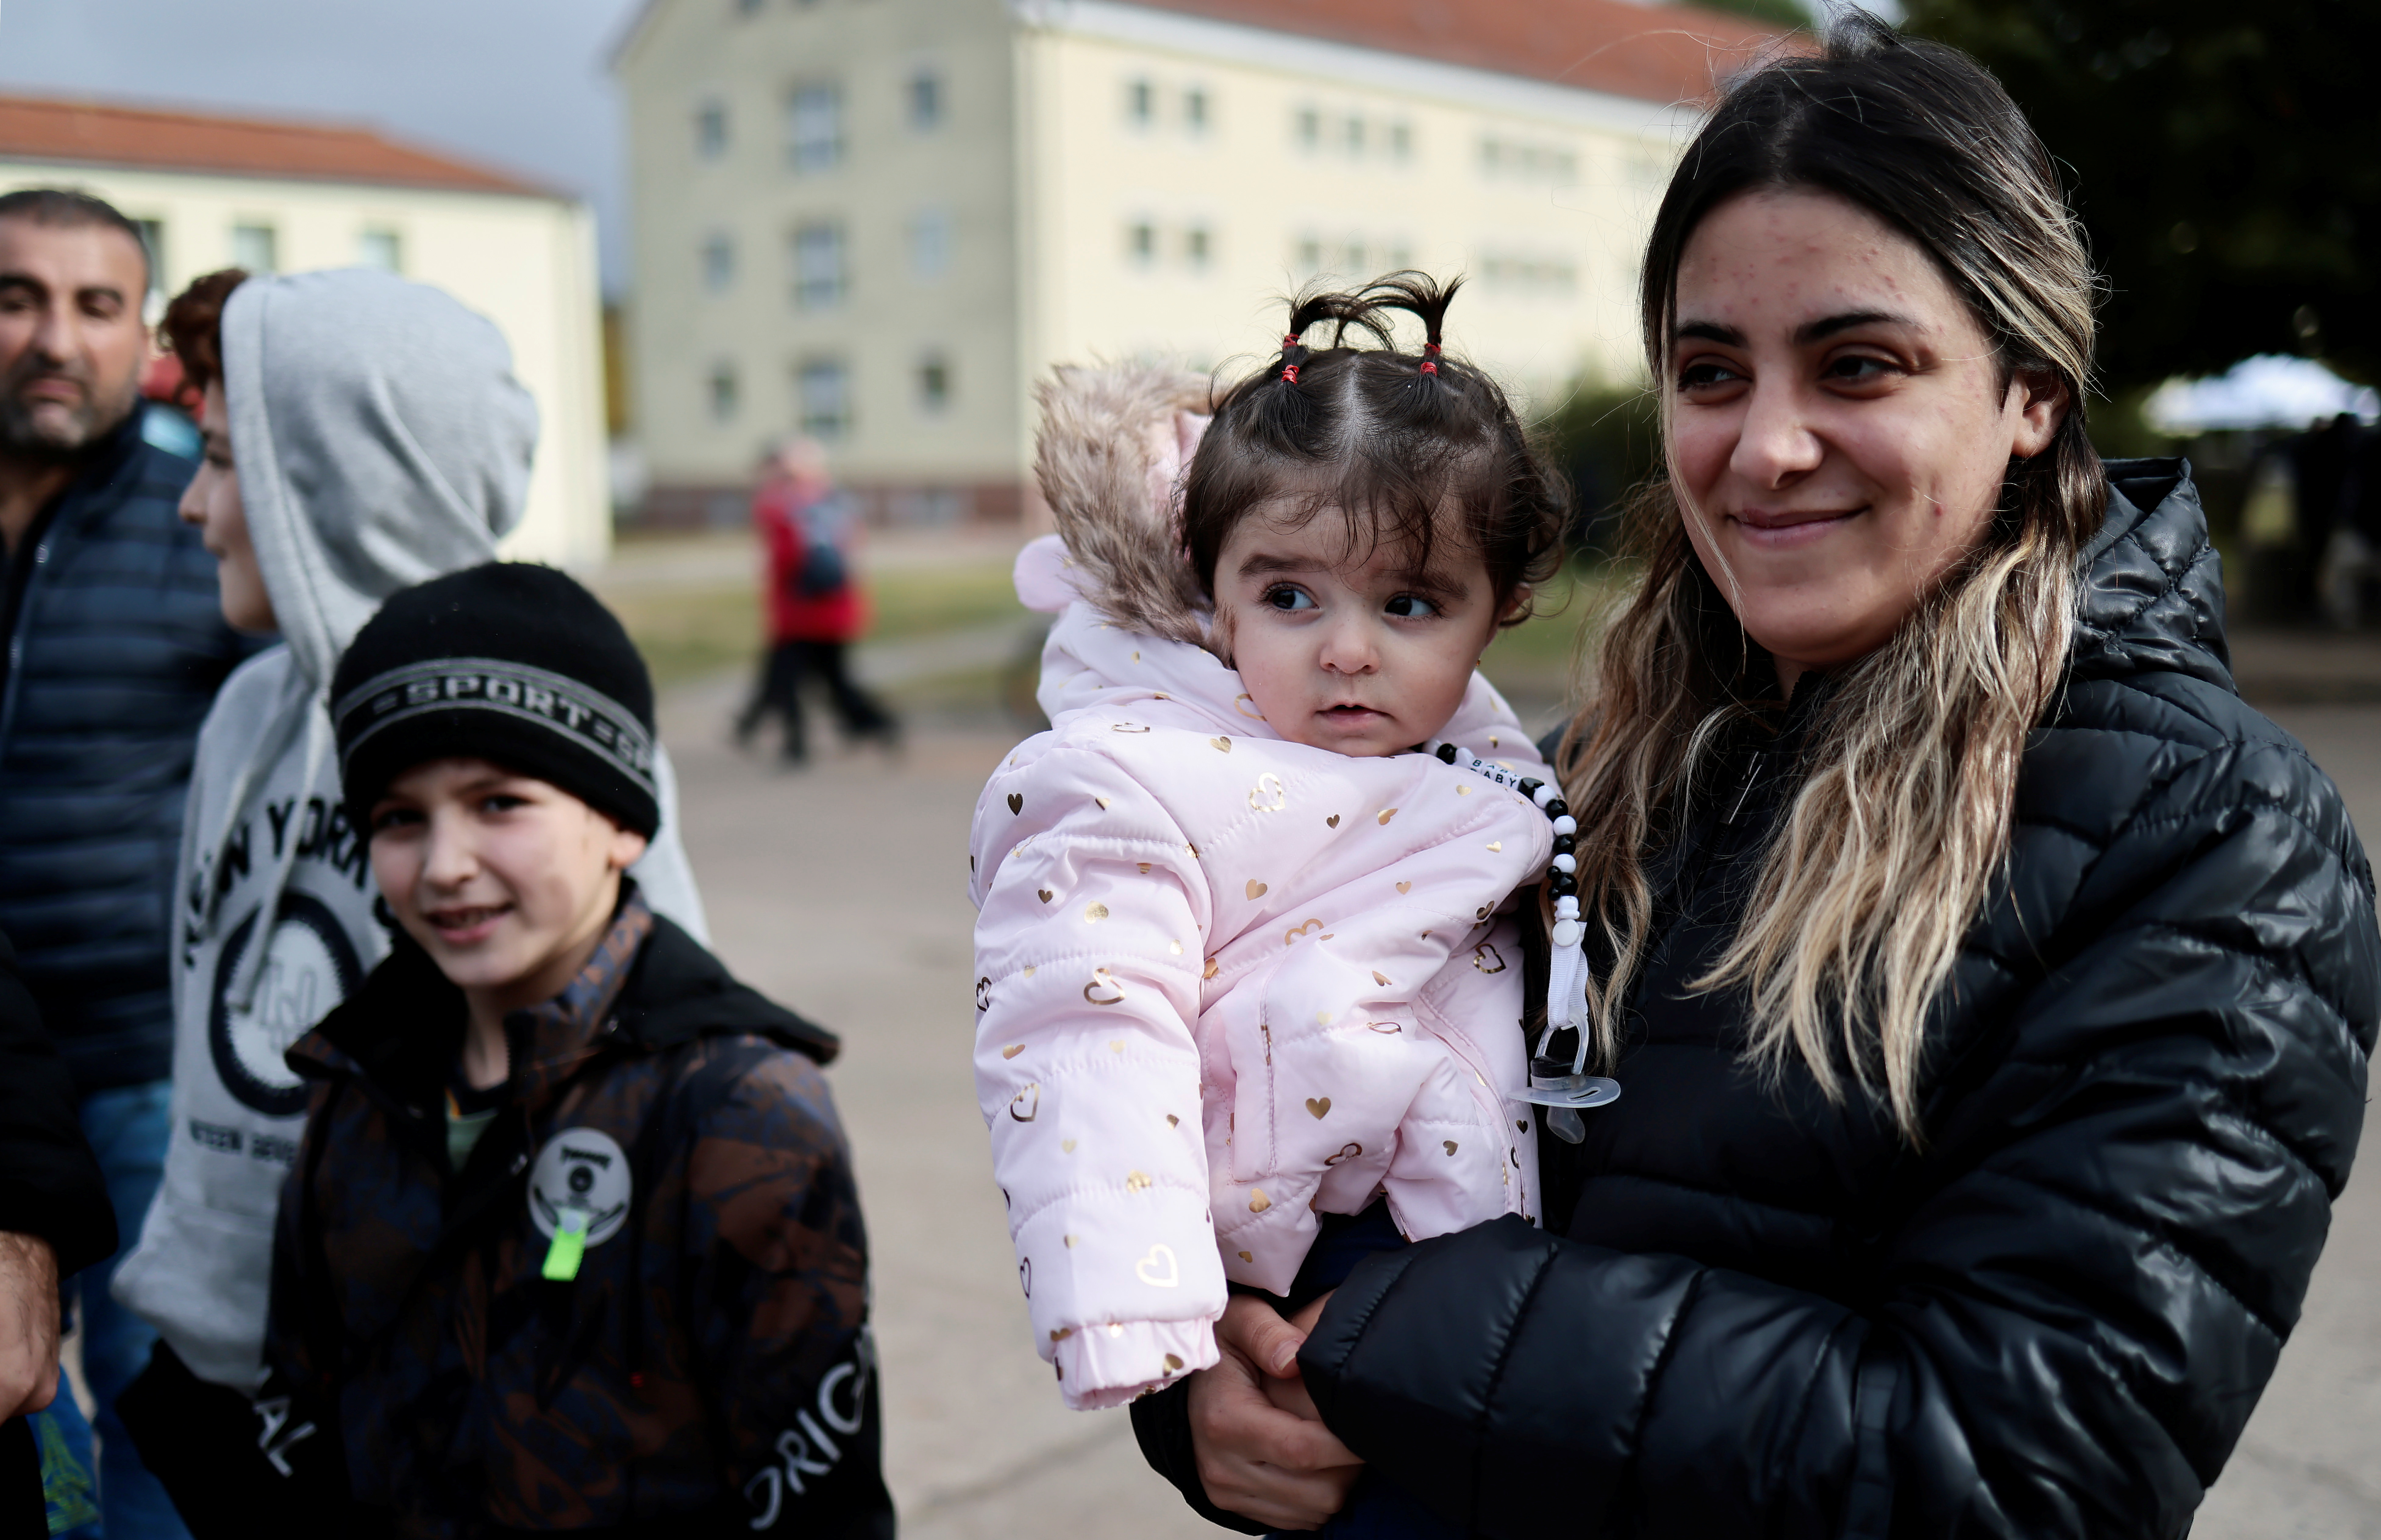 A woman holds her kid at a camp in Eisenhuettenstadt, Germany, October 14, 2021. REUTERS/Hannibal Hanschke